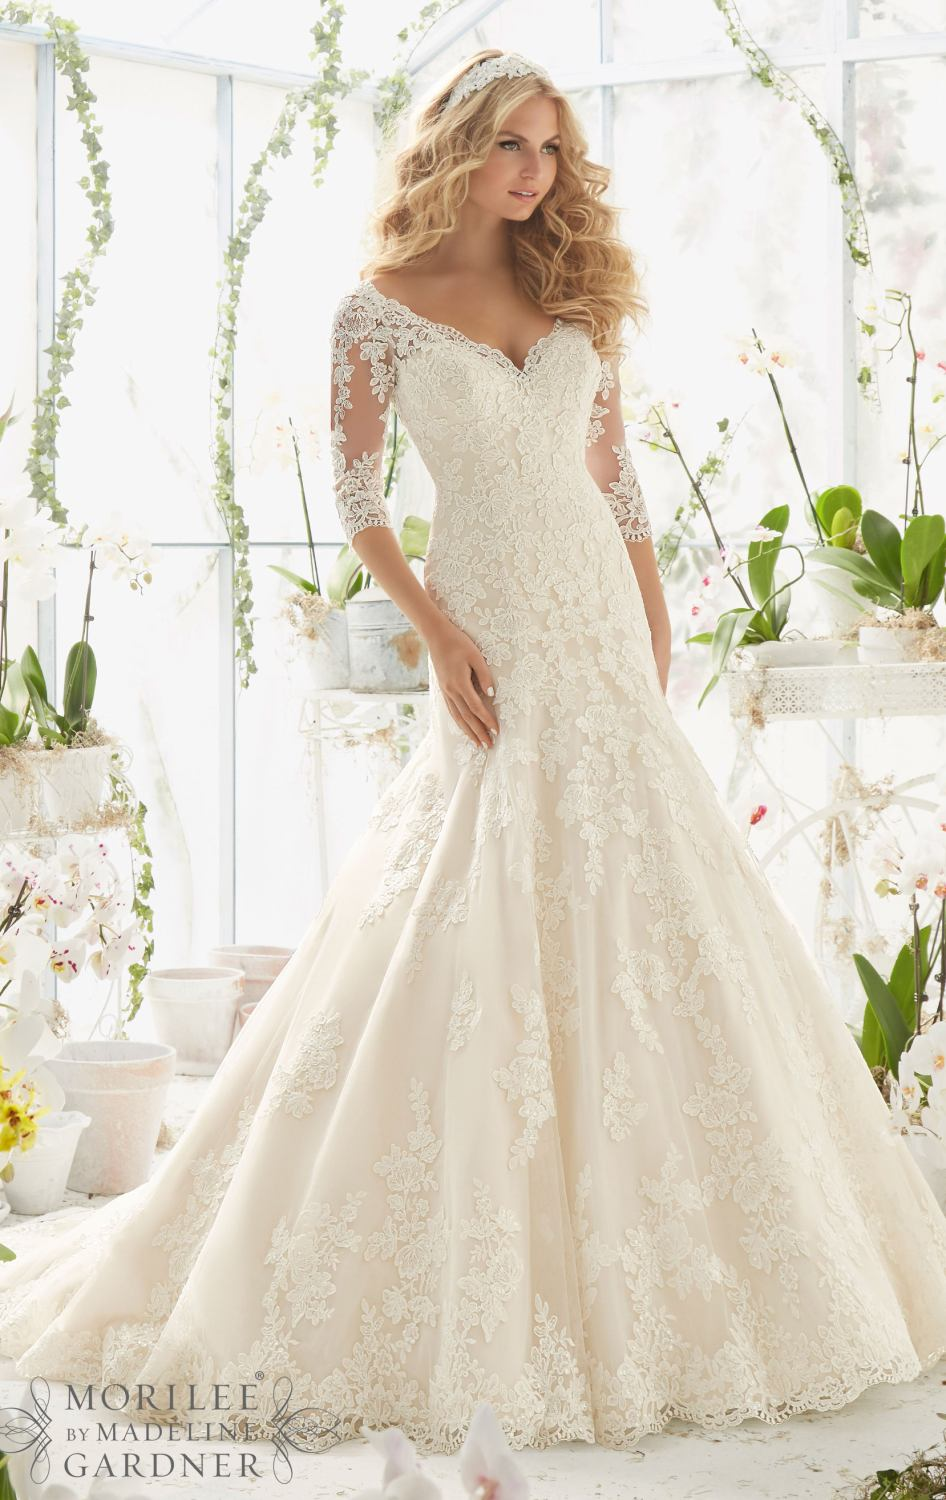 J147 long sleeve wedding dresses plus size wedding dresses elegant j147 long sleeve wedding dresses plus size wedding dresses elegant mermaid wedding dresses junglespirit